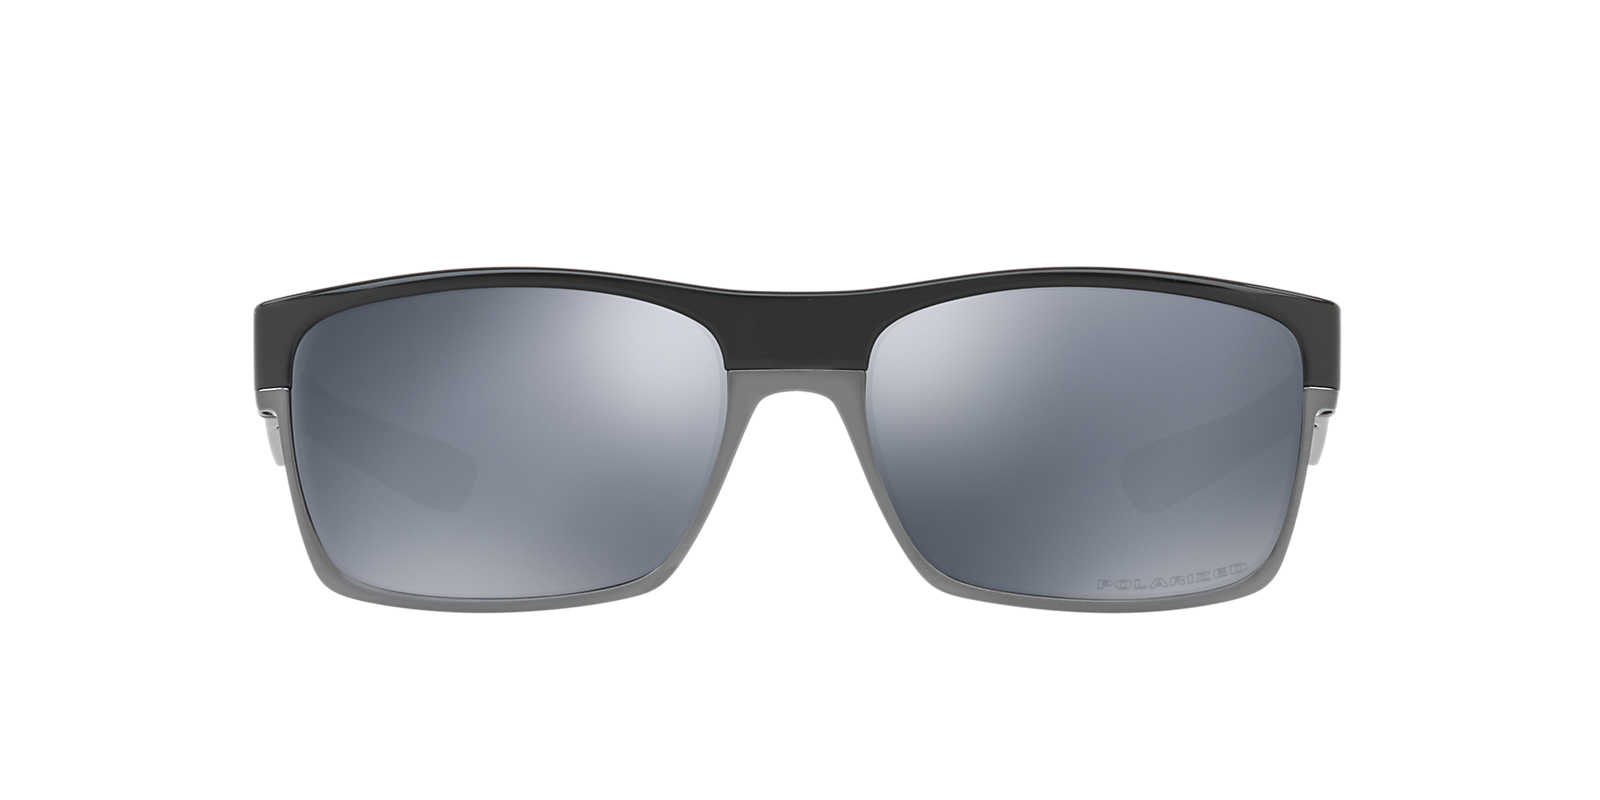 Oakley Sunglasses One Day Sale